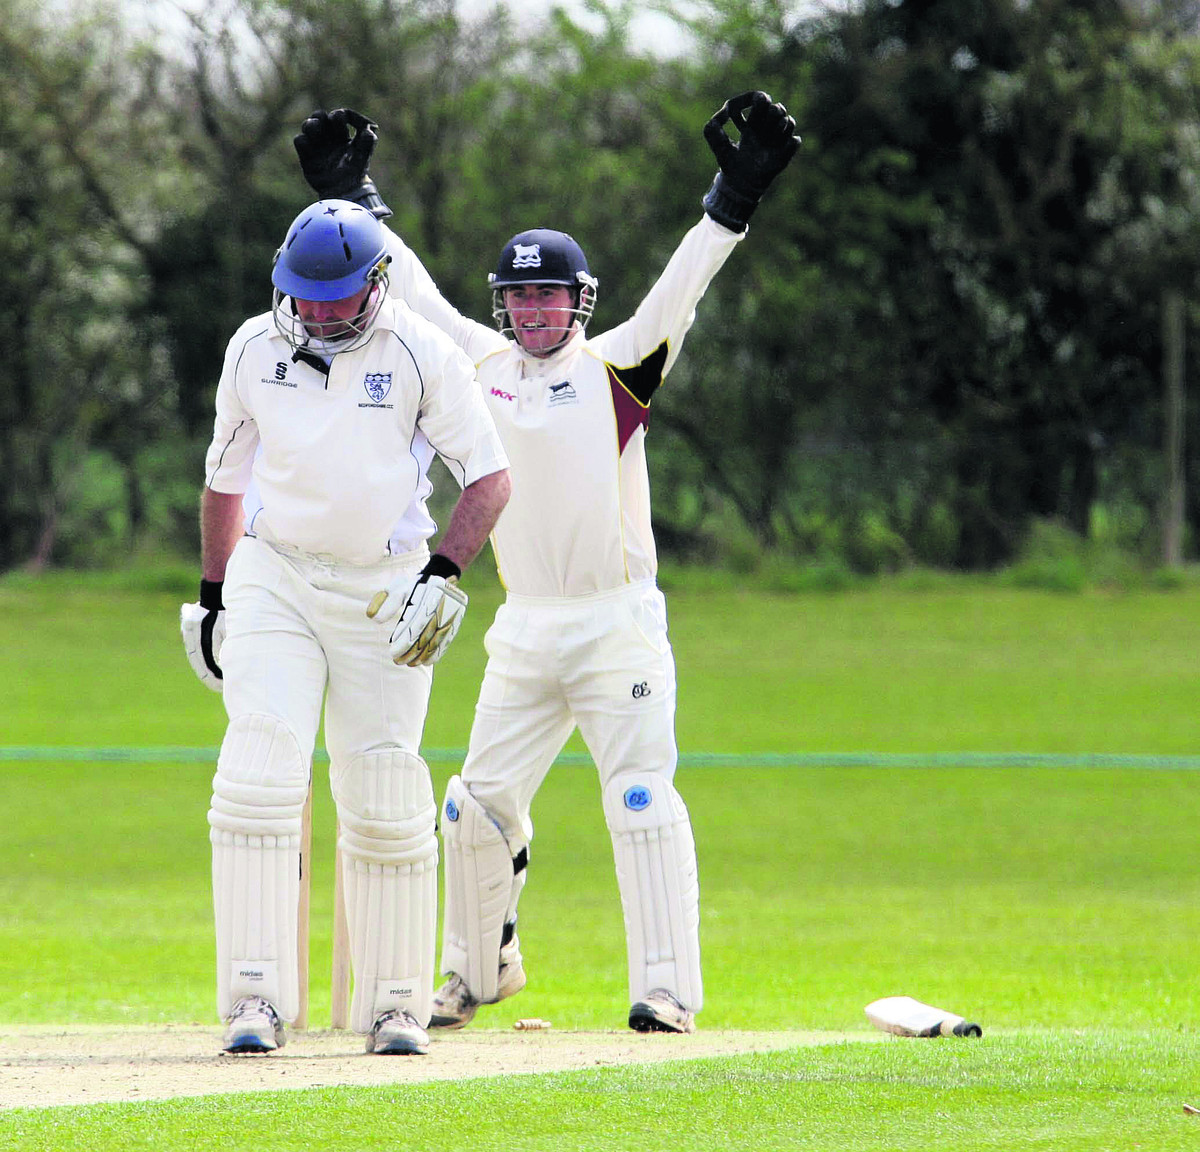 Oxfordshire wicket-keeper Jonny Cater celebrates as Bedfordshire opener Steve Stubbings unluckily hits his own wicket to fall six runs short of a century